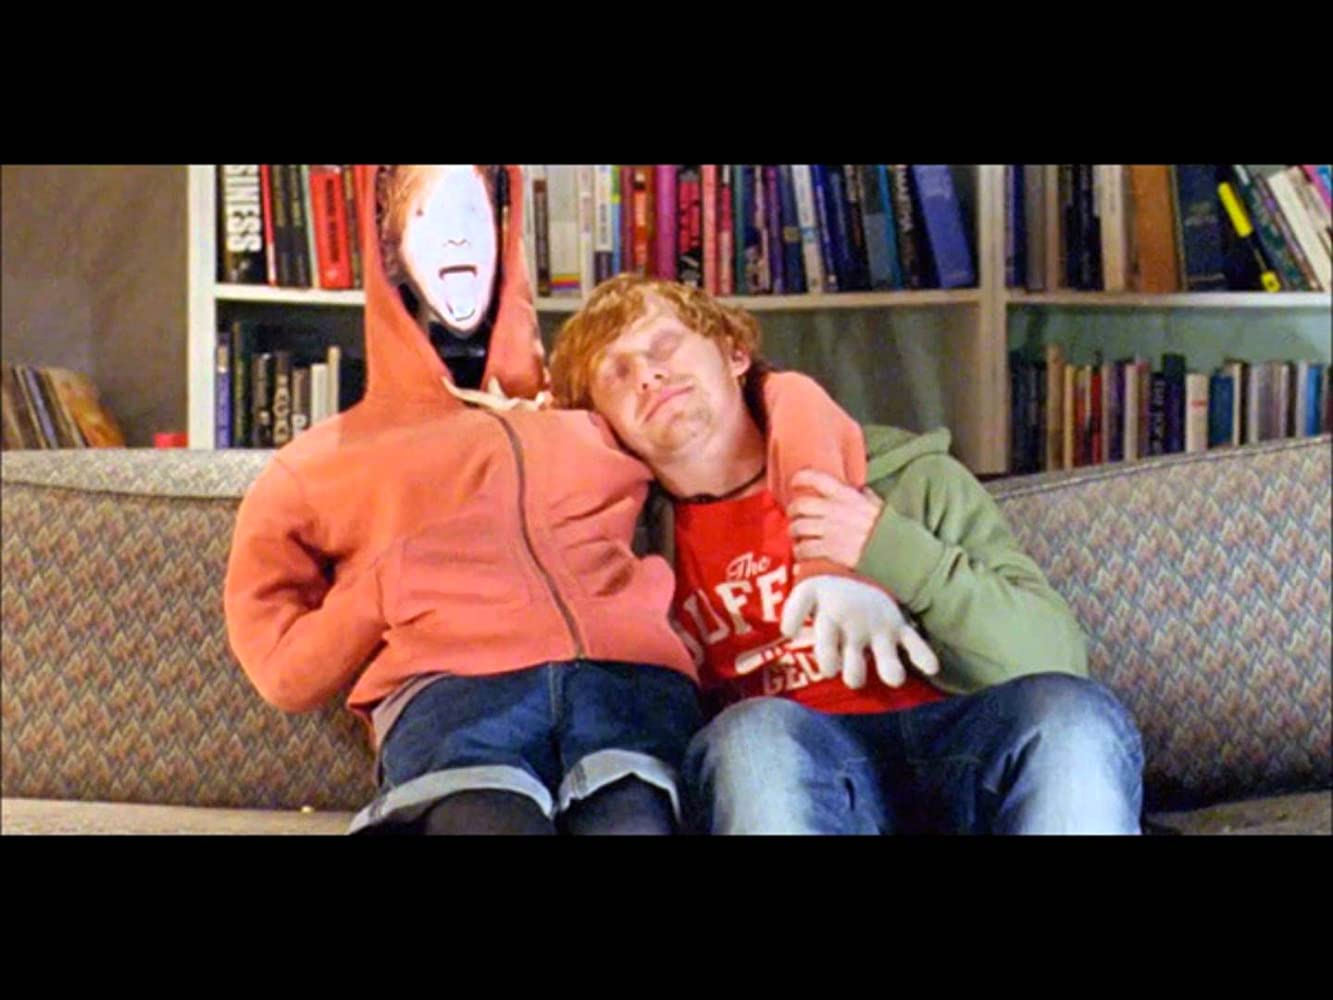 Beautiful Rupert Grint And Ed Sheeran In Ed Sheeran: Lego House (2011)